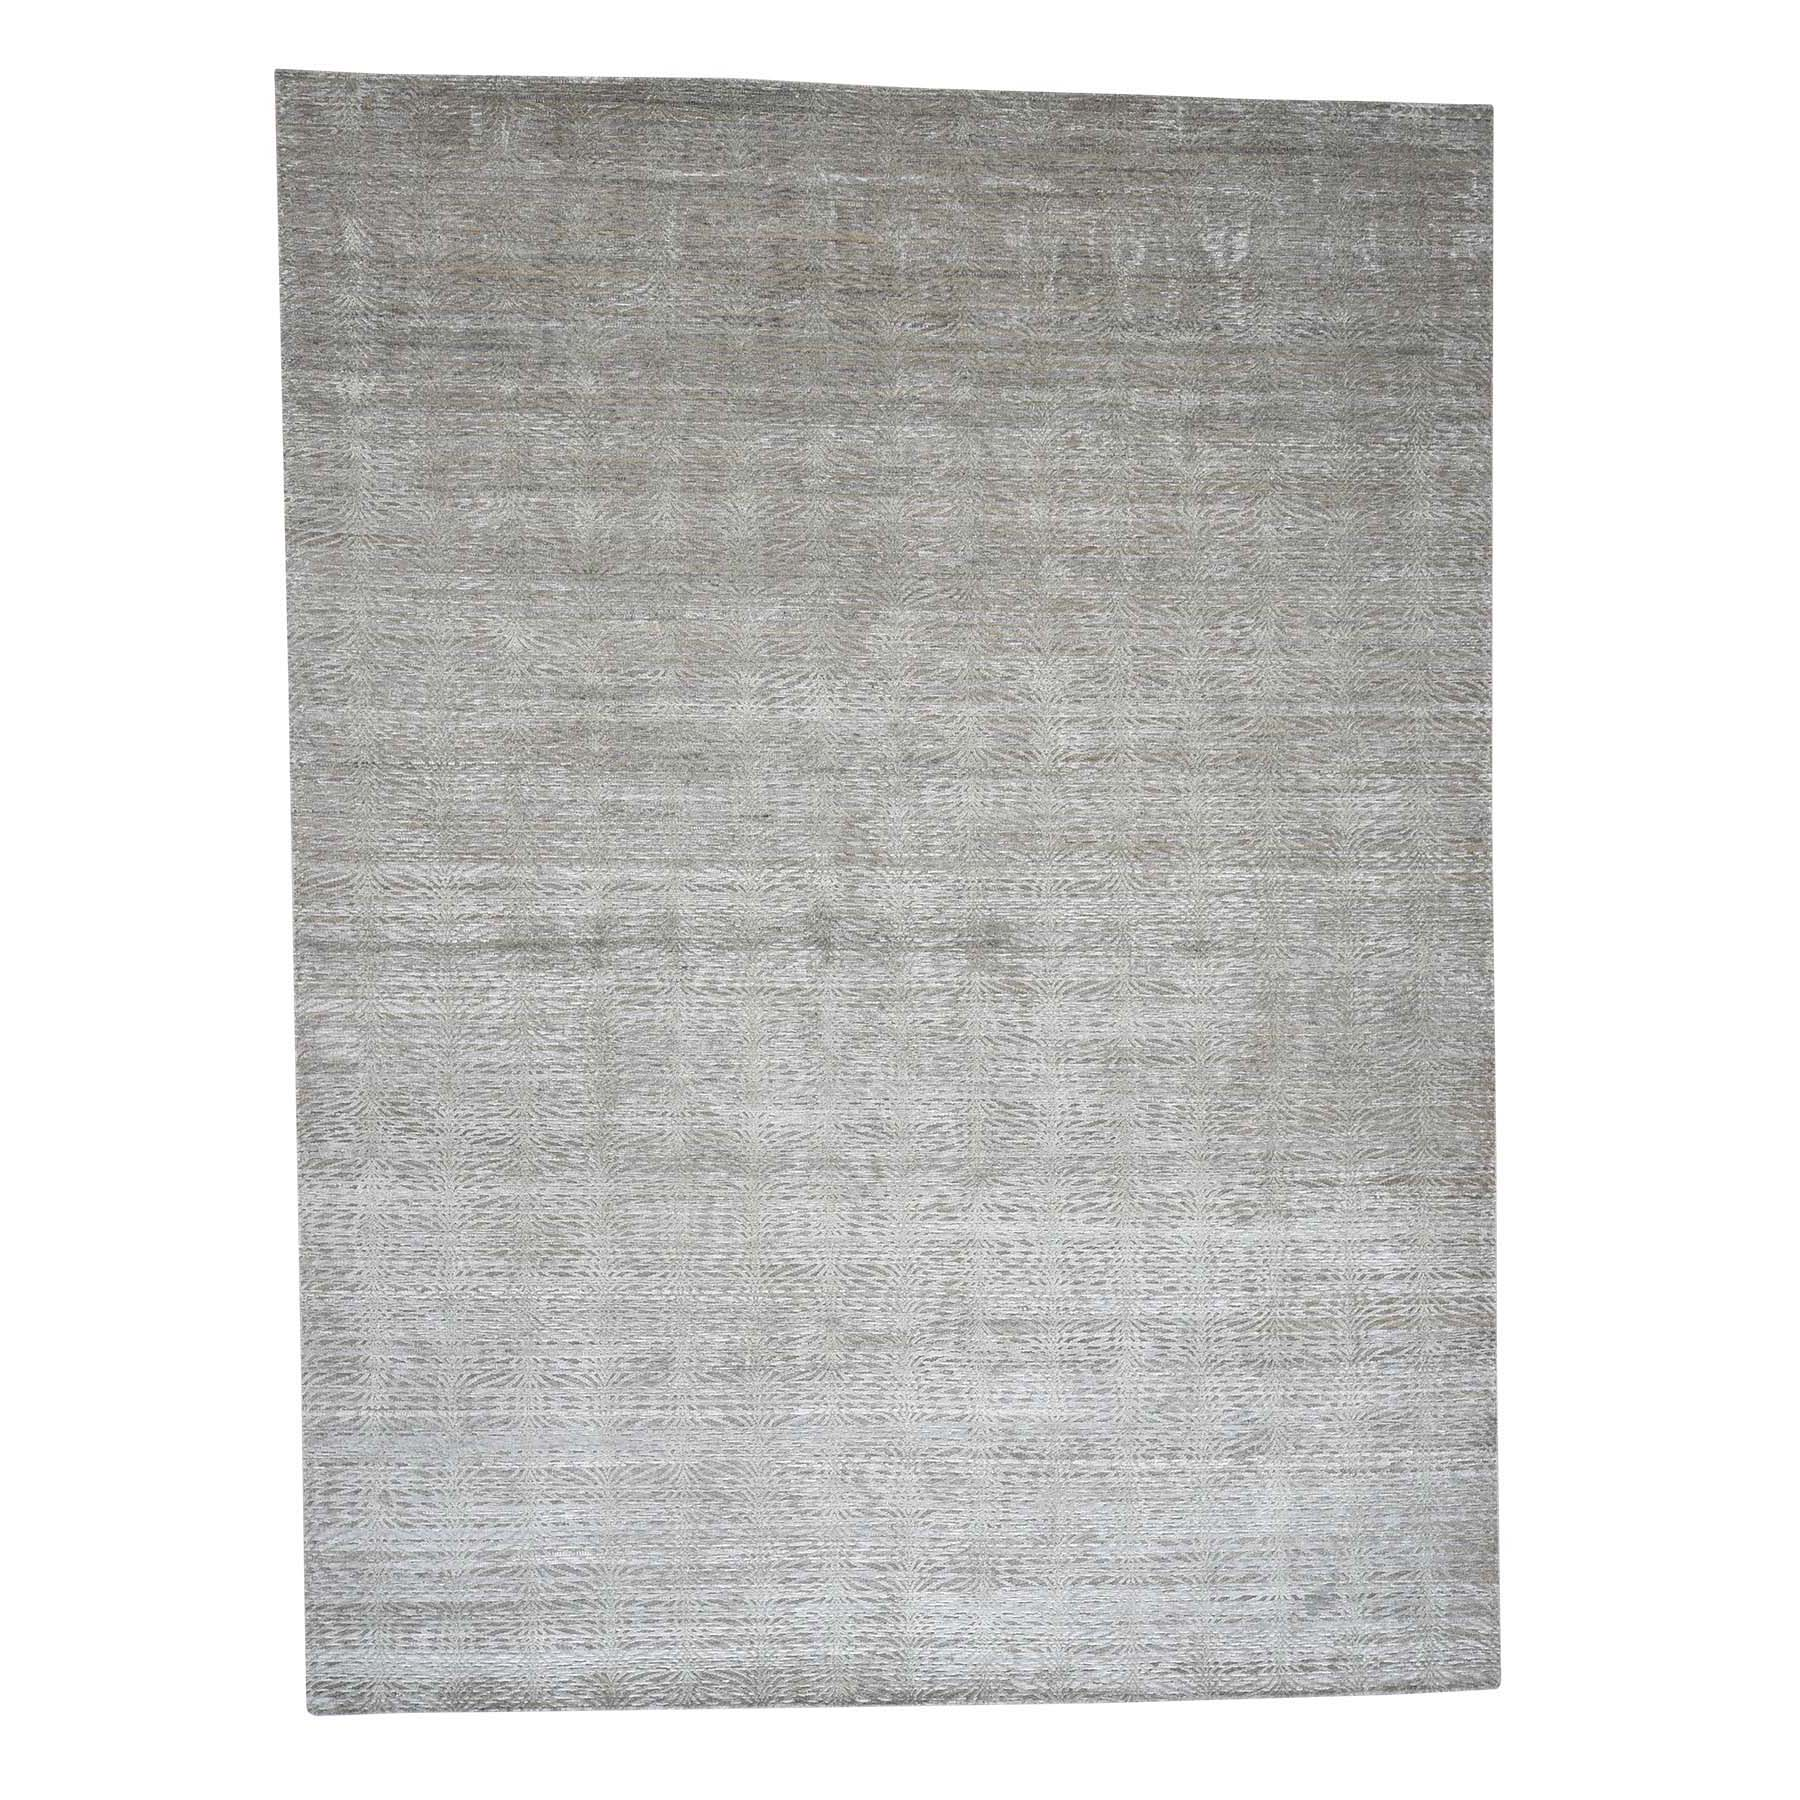 9'x12' Real Silk with Textured Wool Tone on Tone Hand Woven Oriental Rug